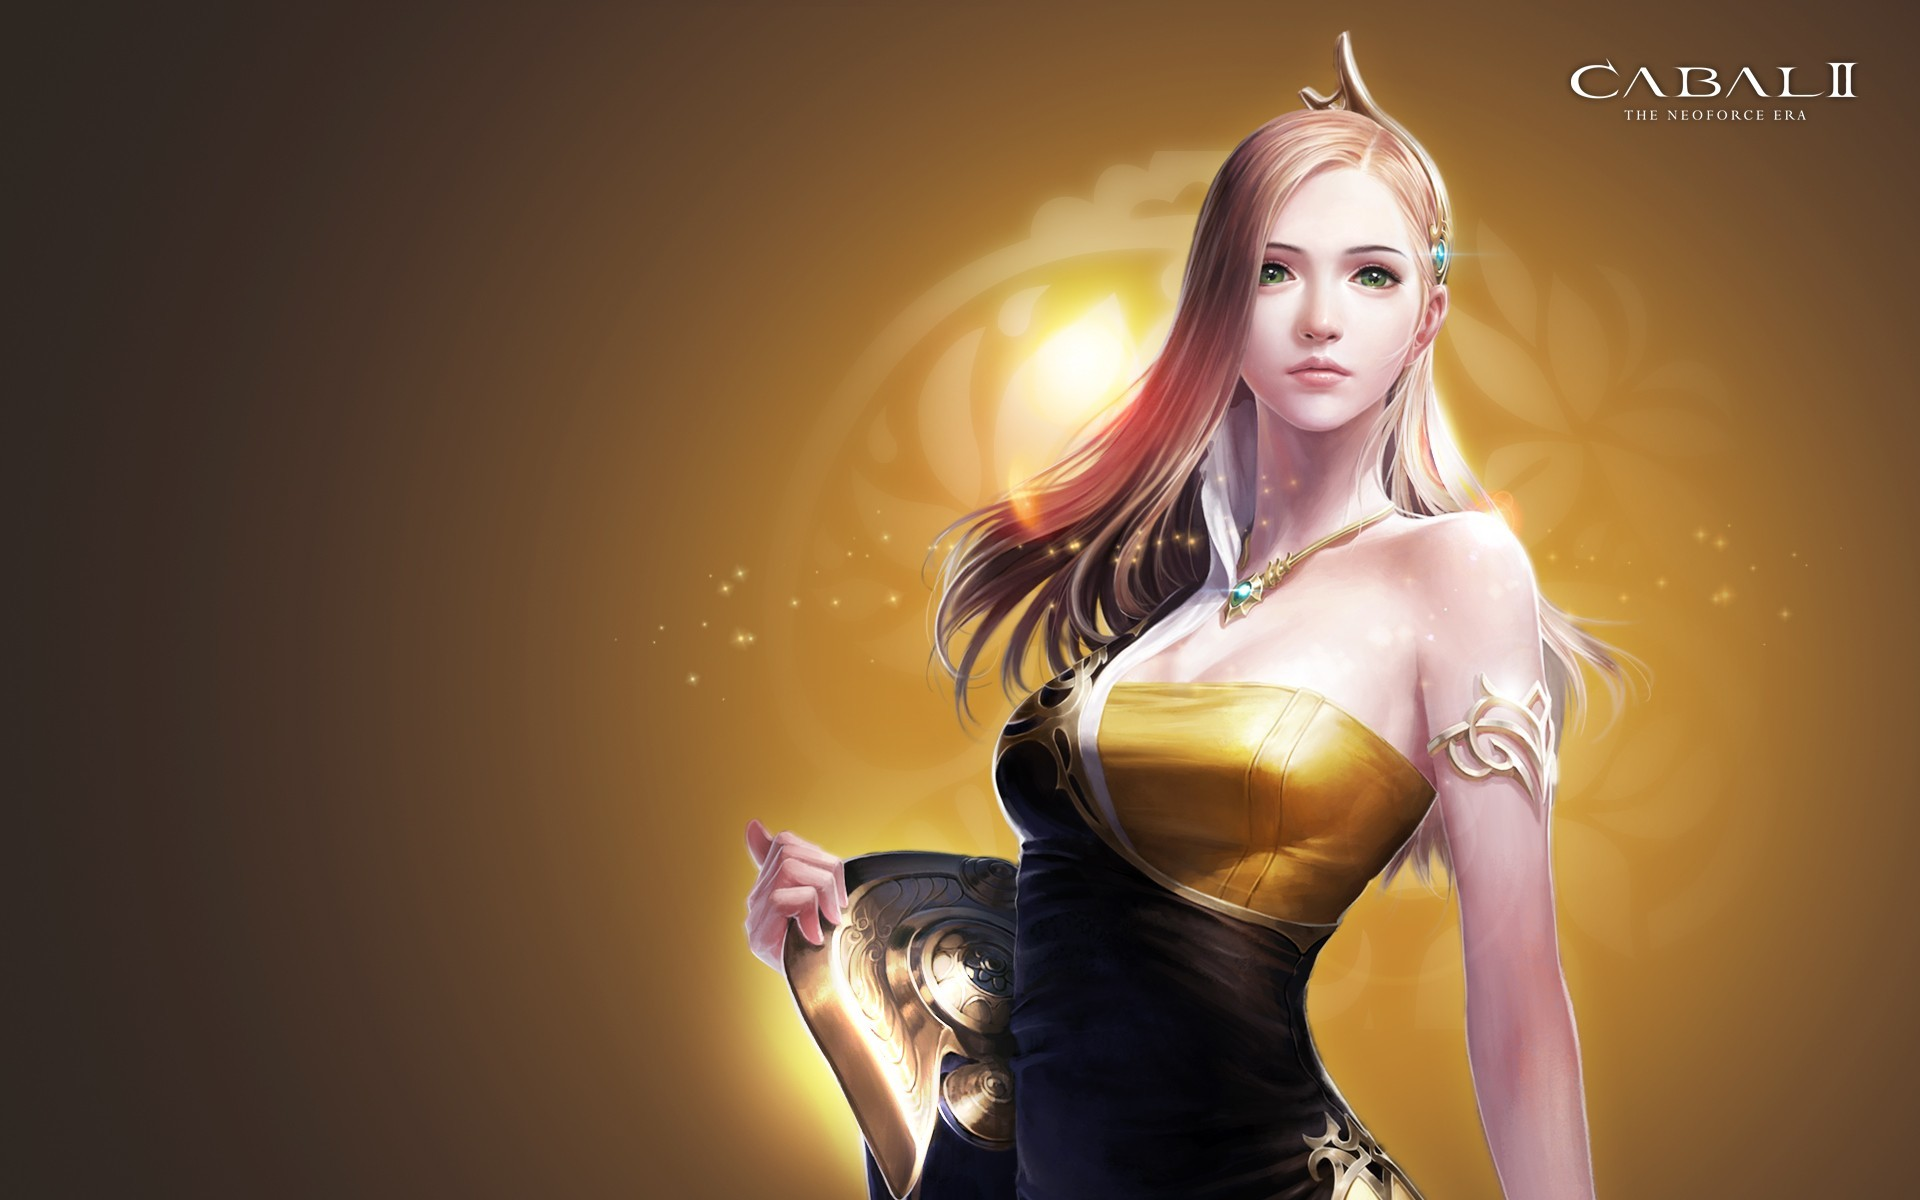 Beautiful Game Girls Wallpapers : Find best latest Beautiful Game Girls  Wallpapers in HD for your PC desktop background and mobile phones.